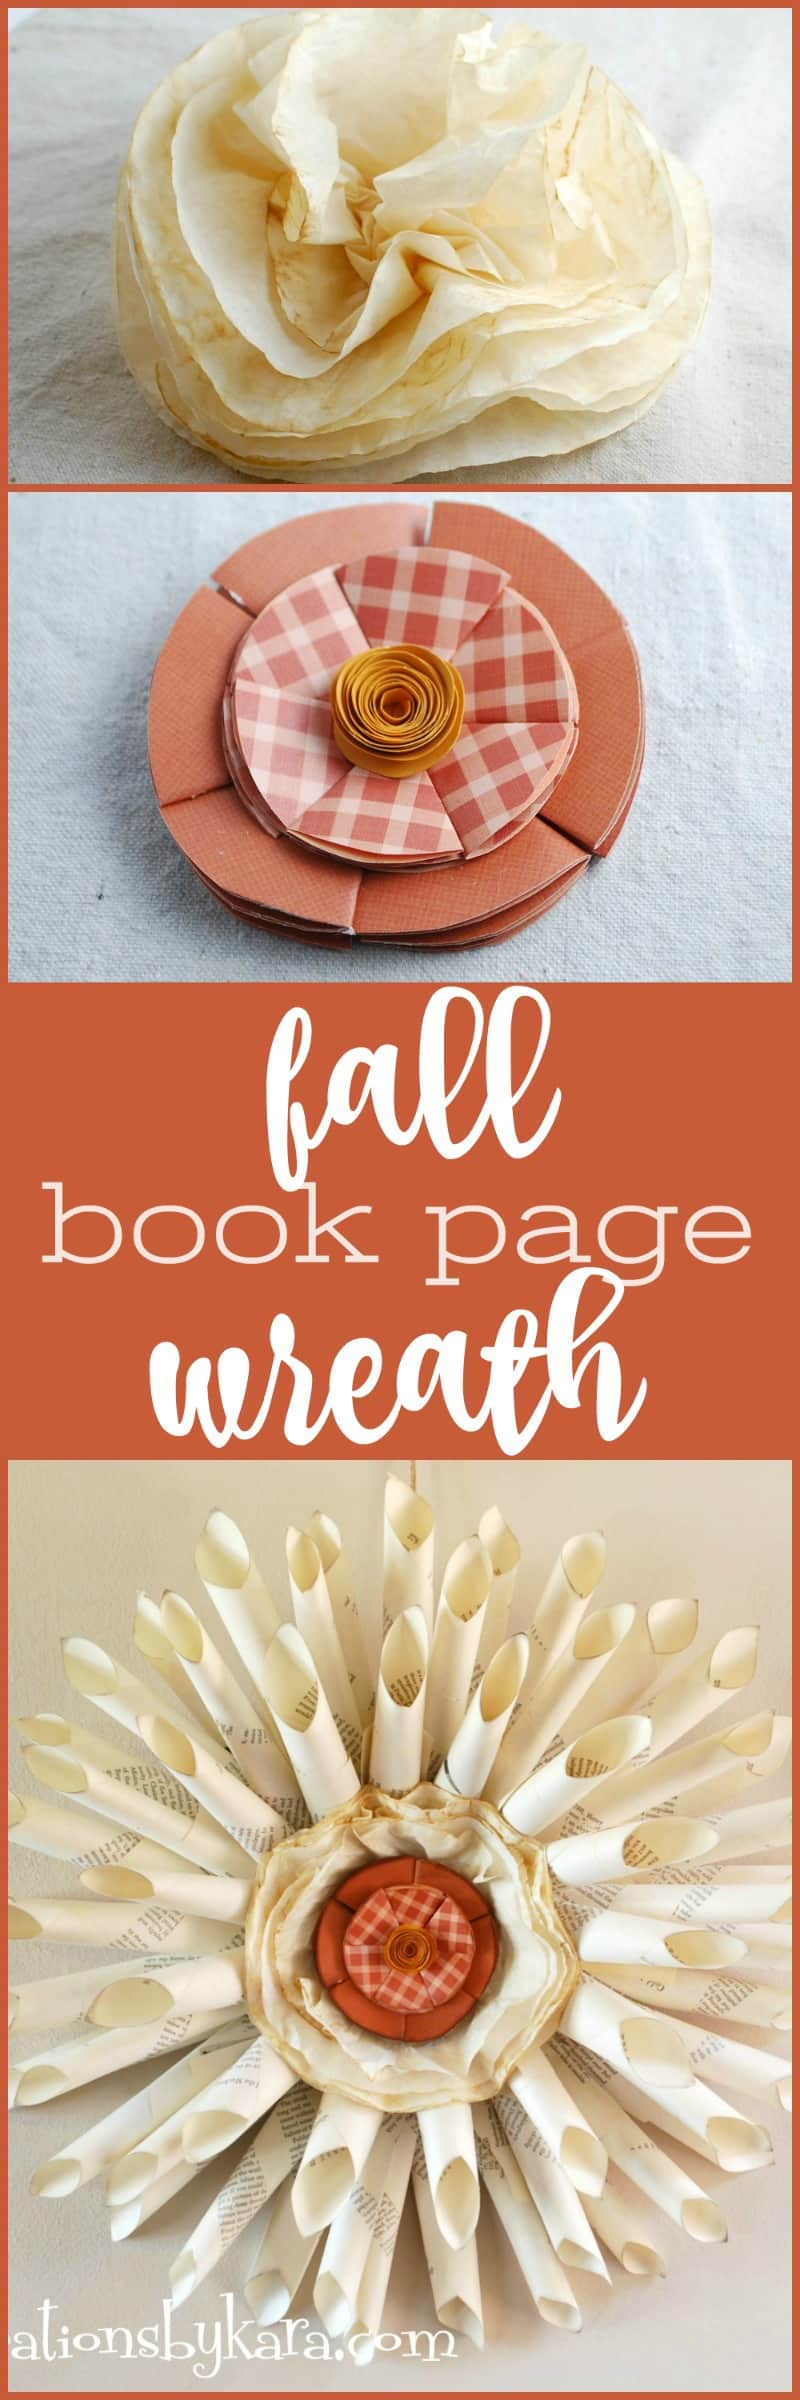 Pretty Fall Book Page Wreath with interchangeable center. Switch out the middle to match different seasons. An easy fall decor project.